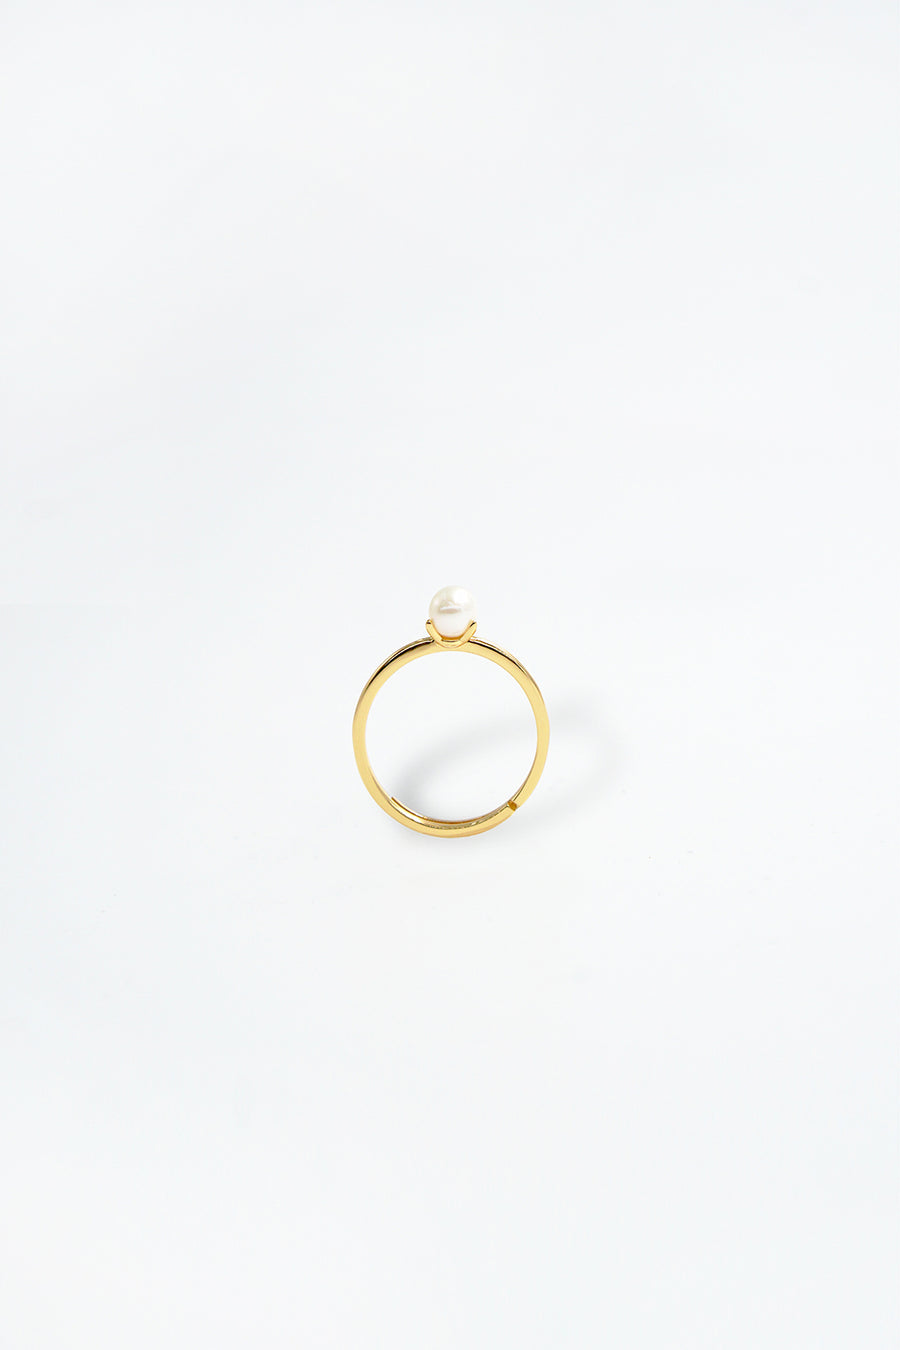 Audrey 14K Gold Plated Pearl Ring